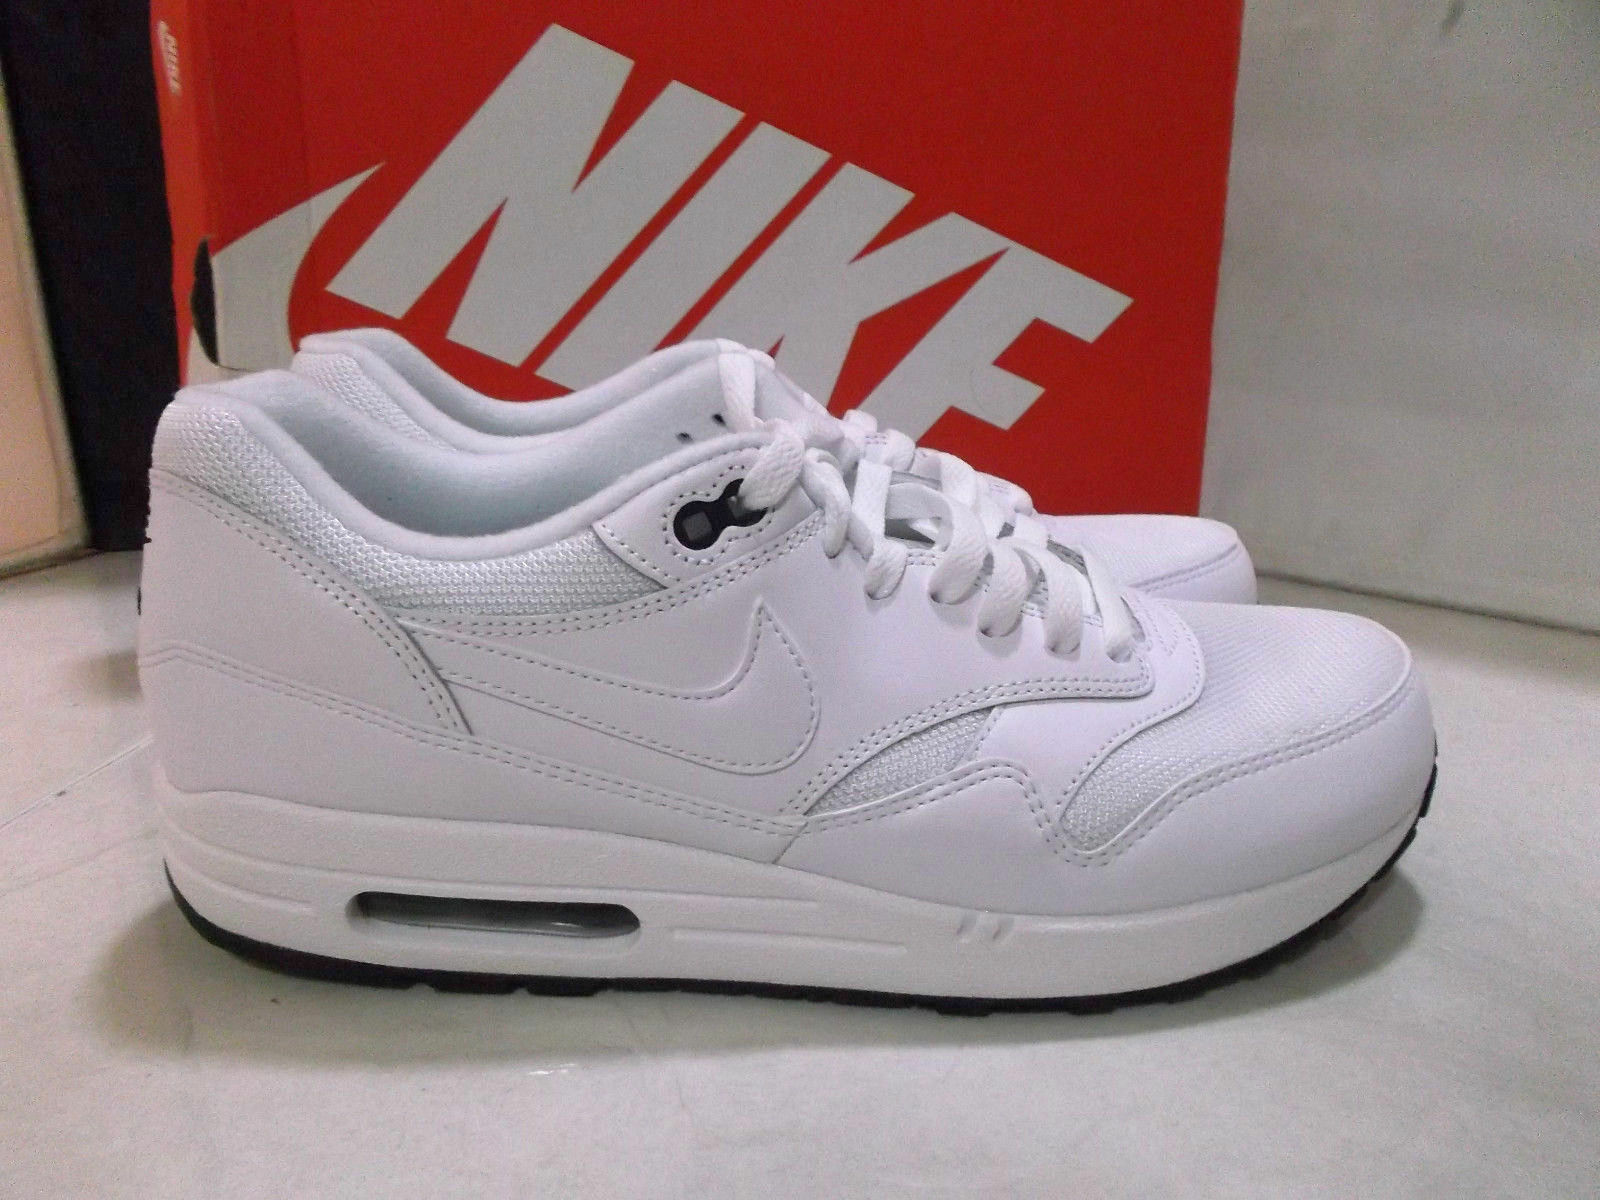 NIKE AIR MAX 1 ESSENTIAL LEATHER WHITE Sz 10 (537383-125)90 95 97 2015 vapormax